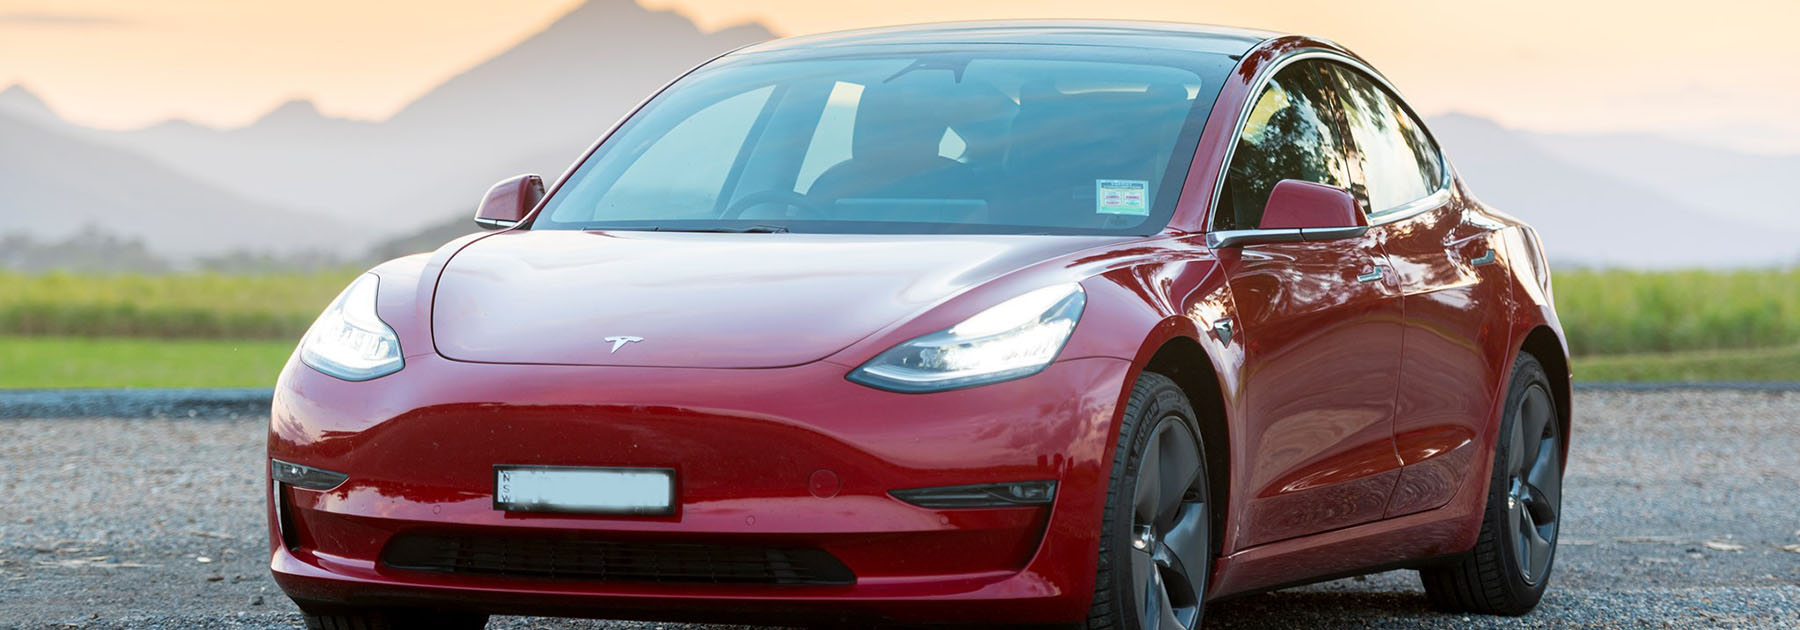 Accelerate electric vehicles - petition